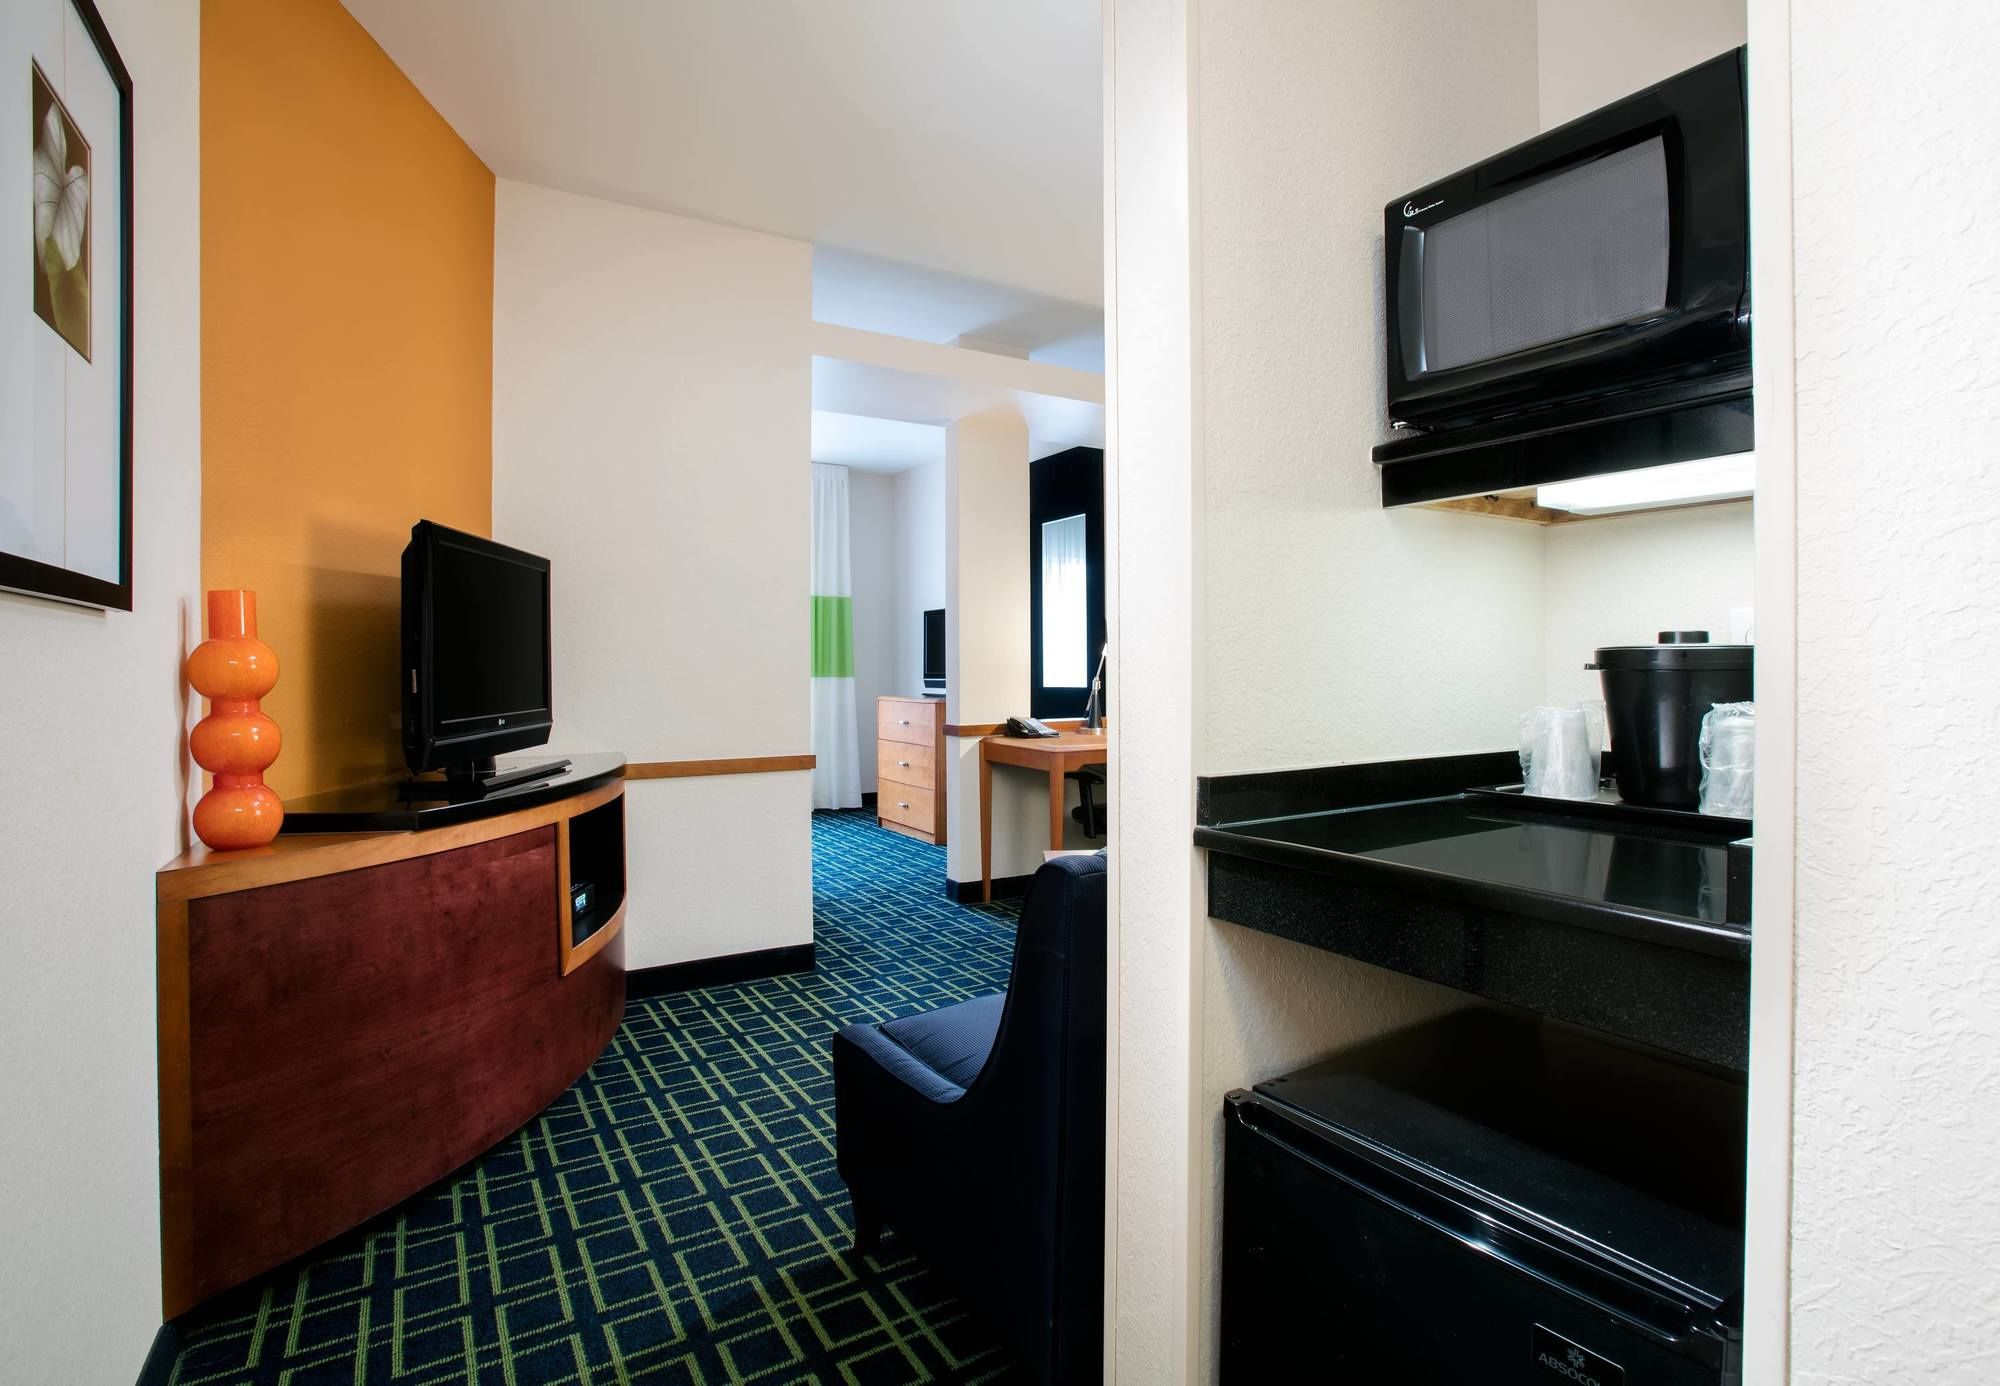 Fairfield Inn & Suites by Marriott Lakeland Plant City in Plant City, FL